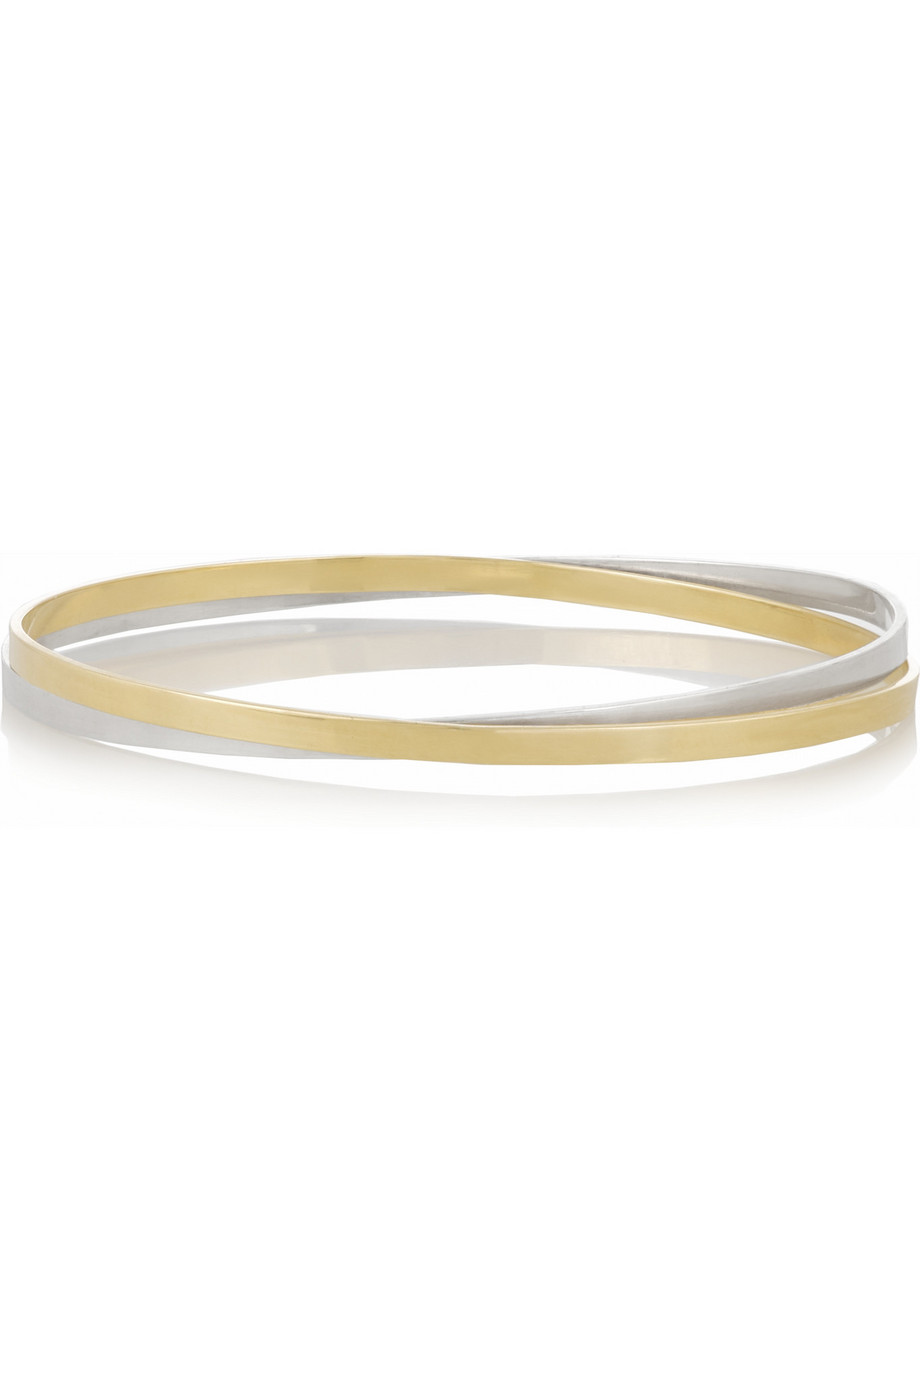 18-Karat Gold and Sterling Silver Interlinked Bangles, Inez and Vinoodh, Women's